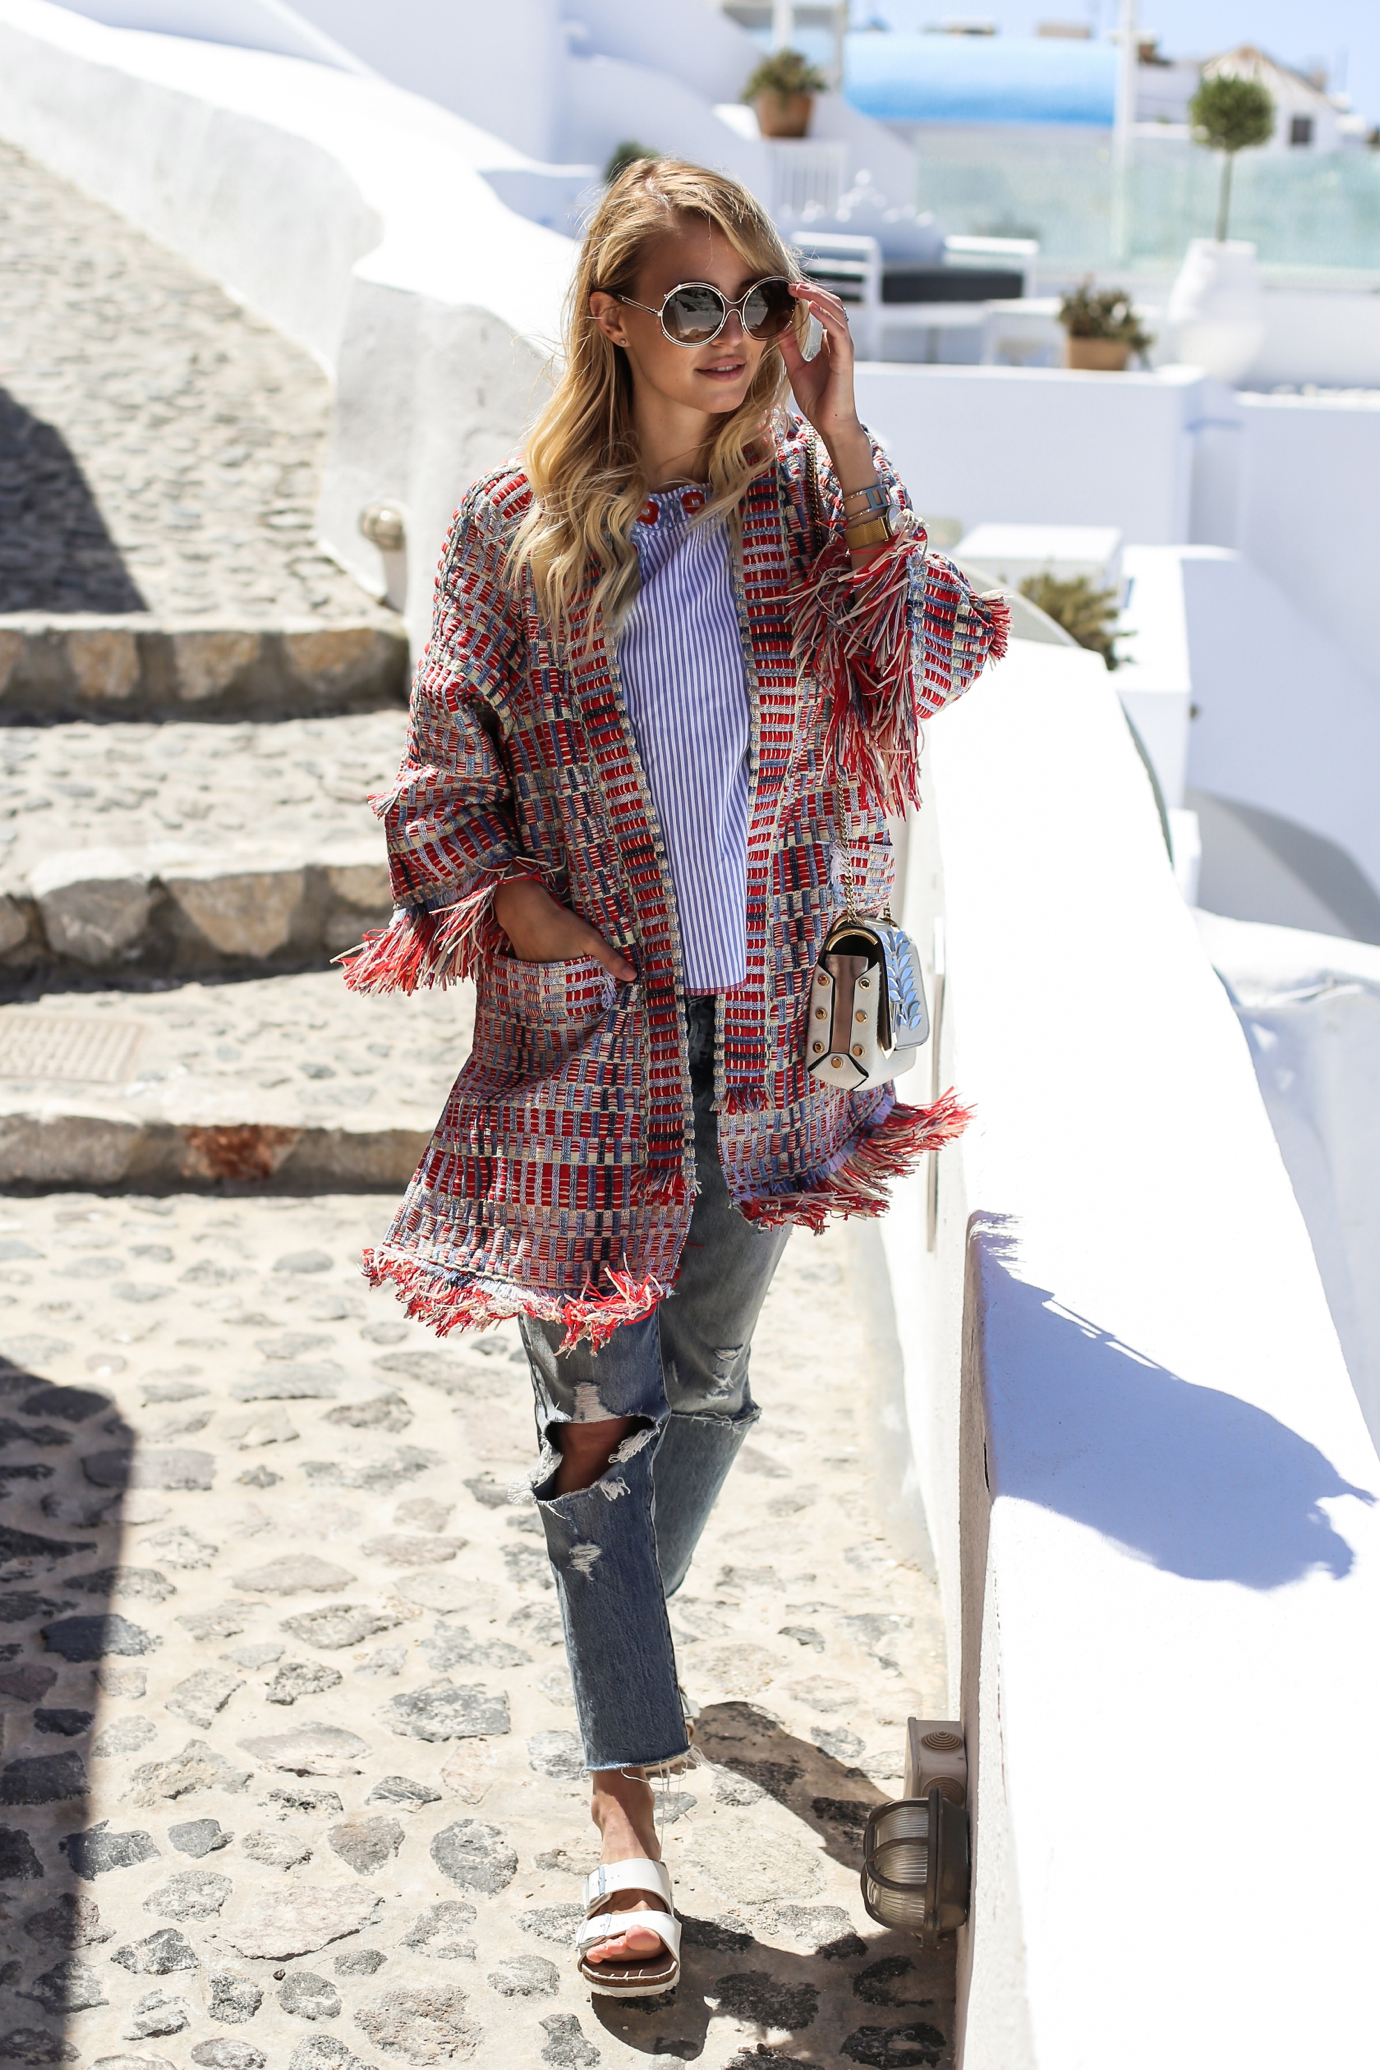 Stripes_Fringes_Levis_ToryBurch_ohhcouture_Santorini_1